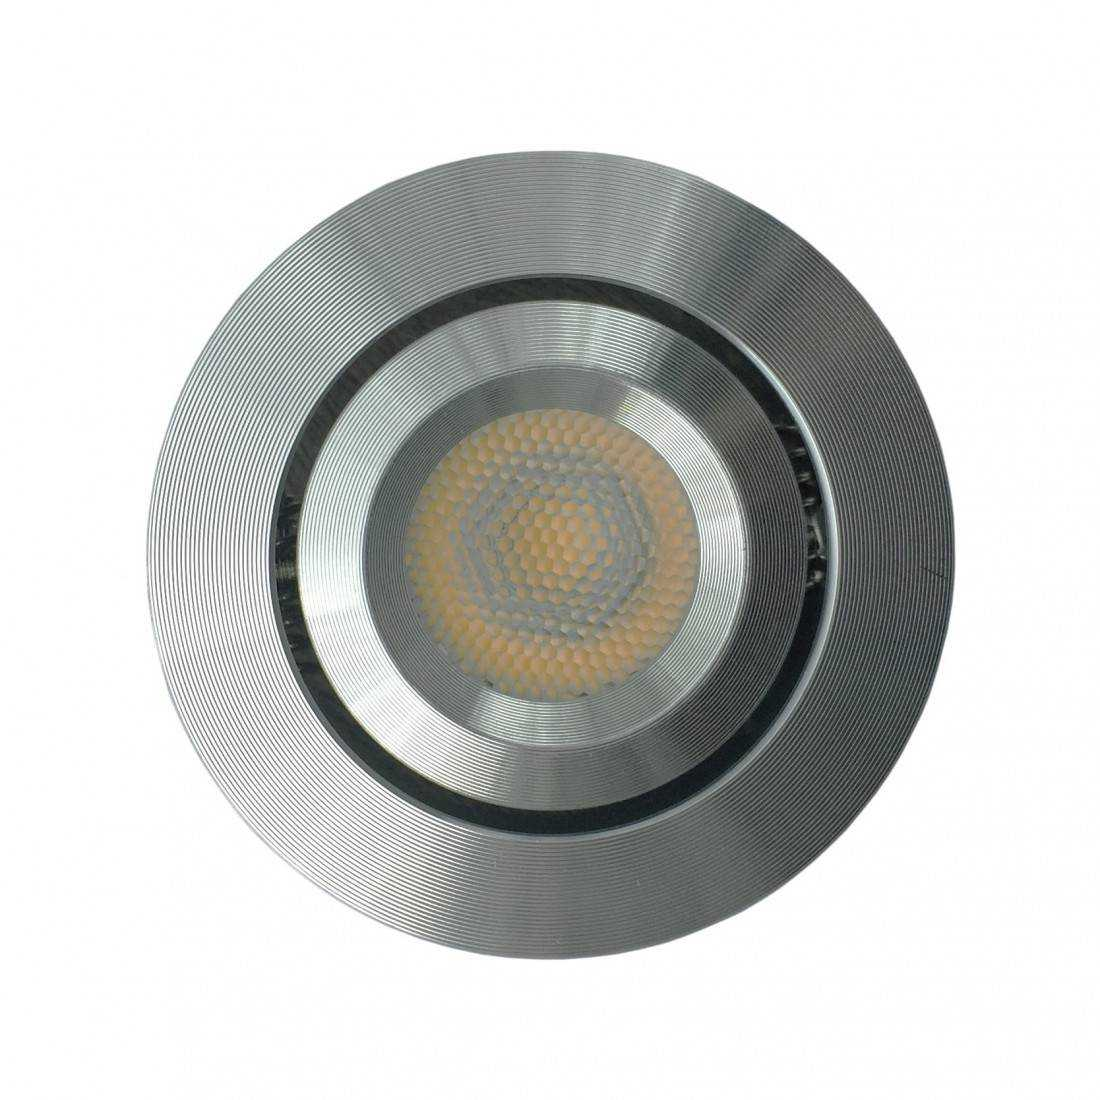 Mini spot led encastrable 3w 230v for Spot encastrable plafond exterieur